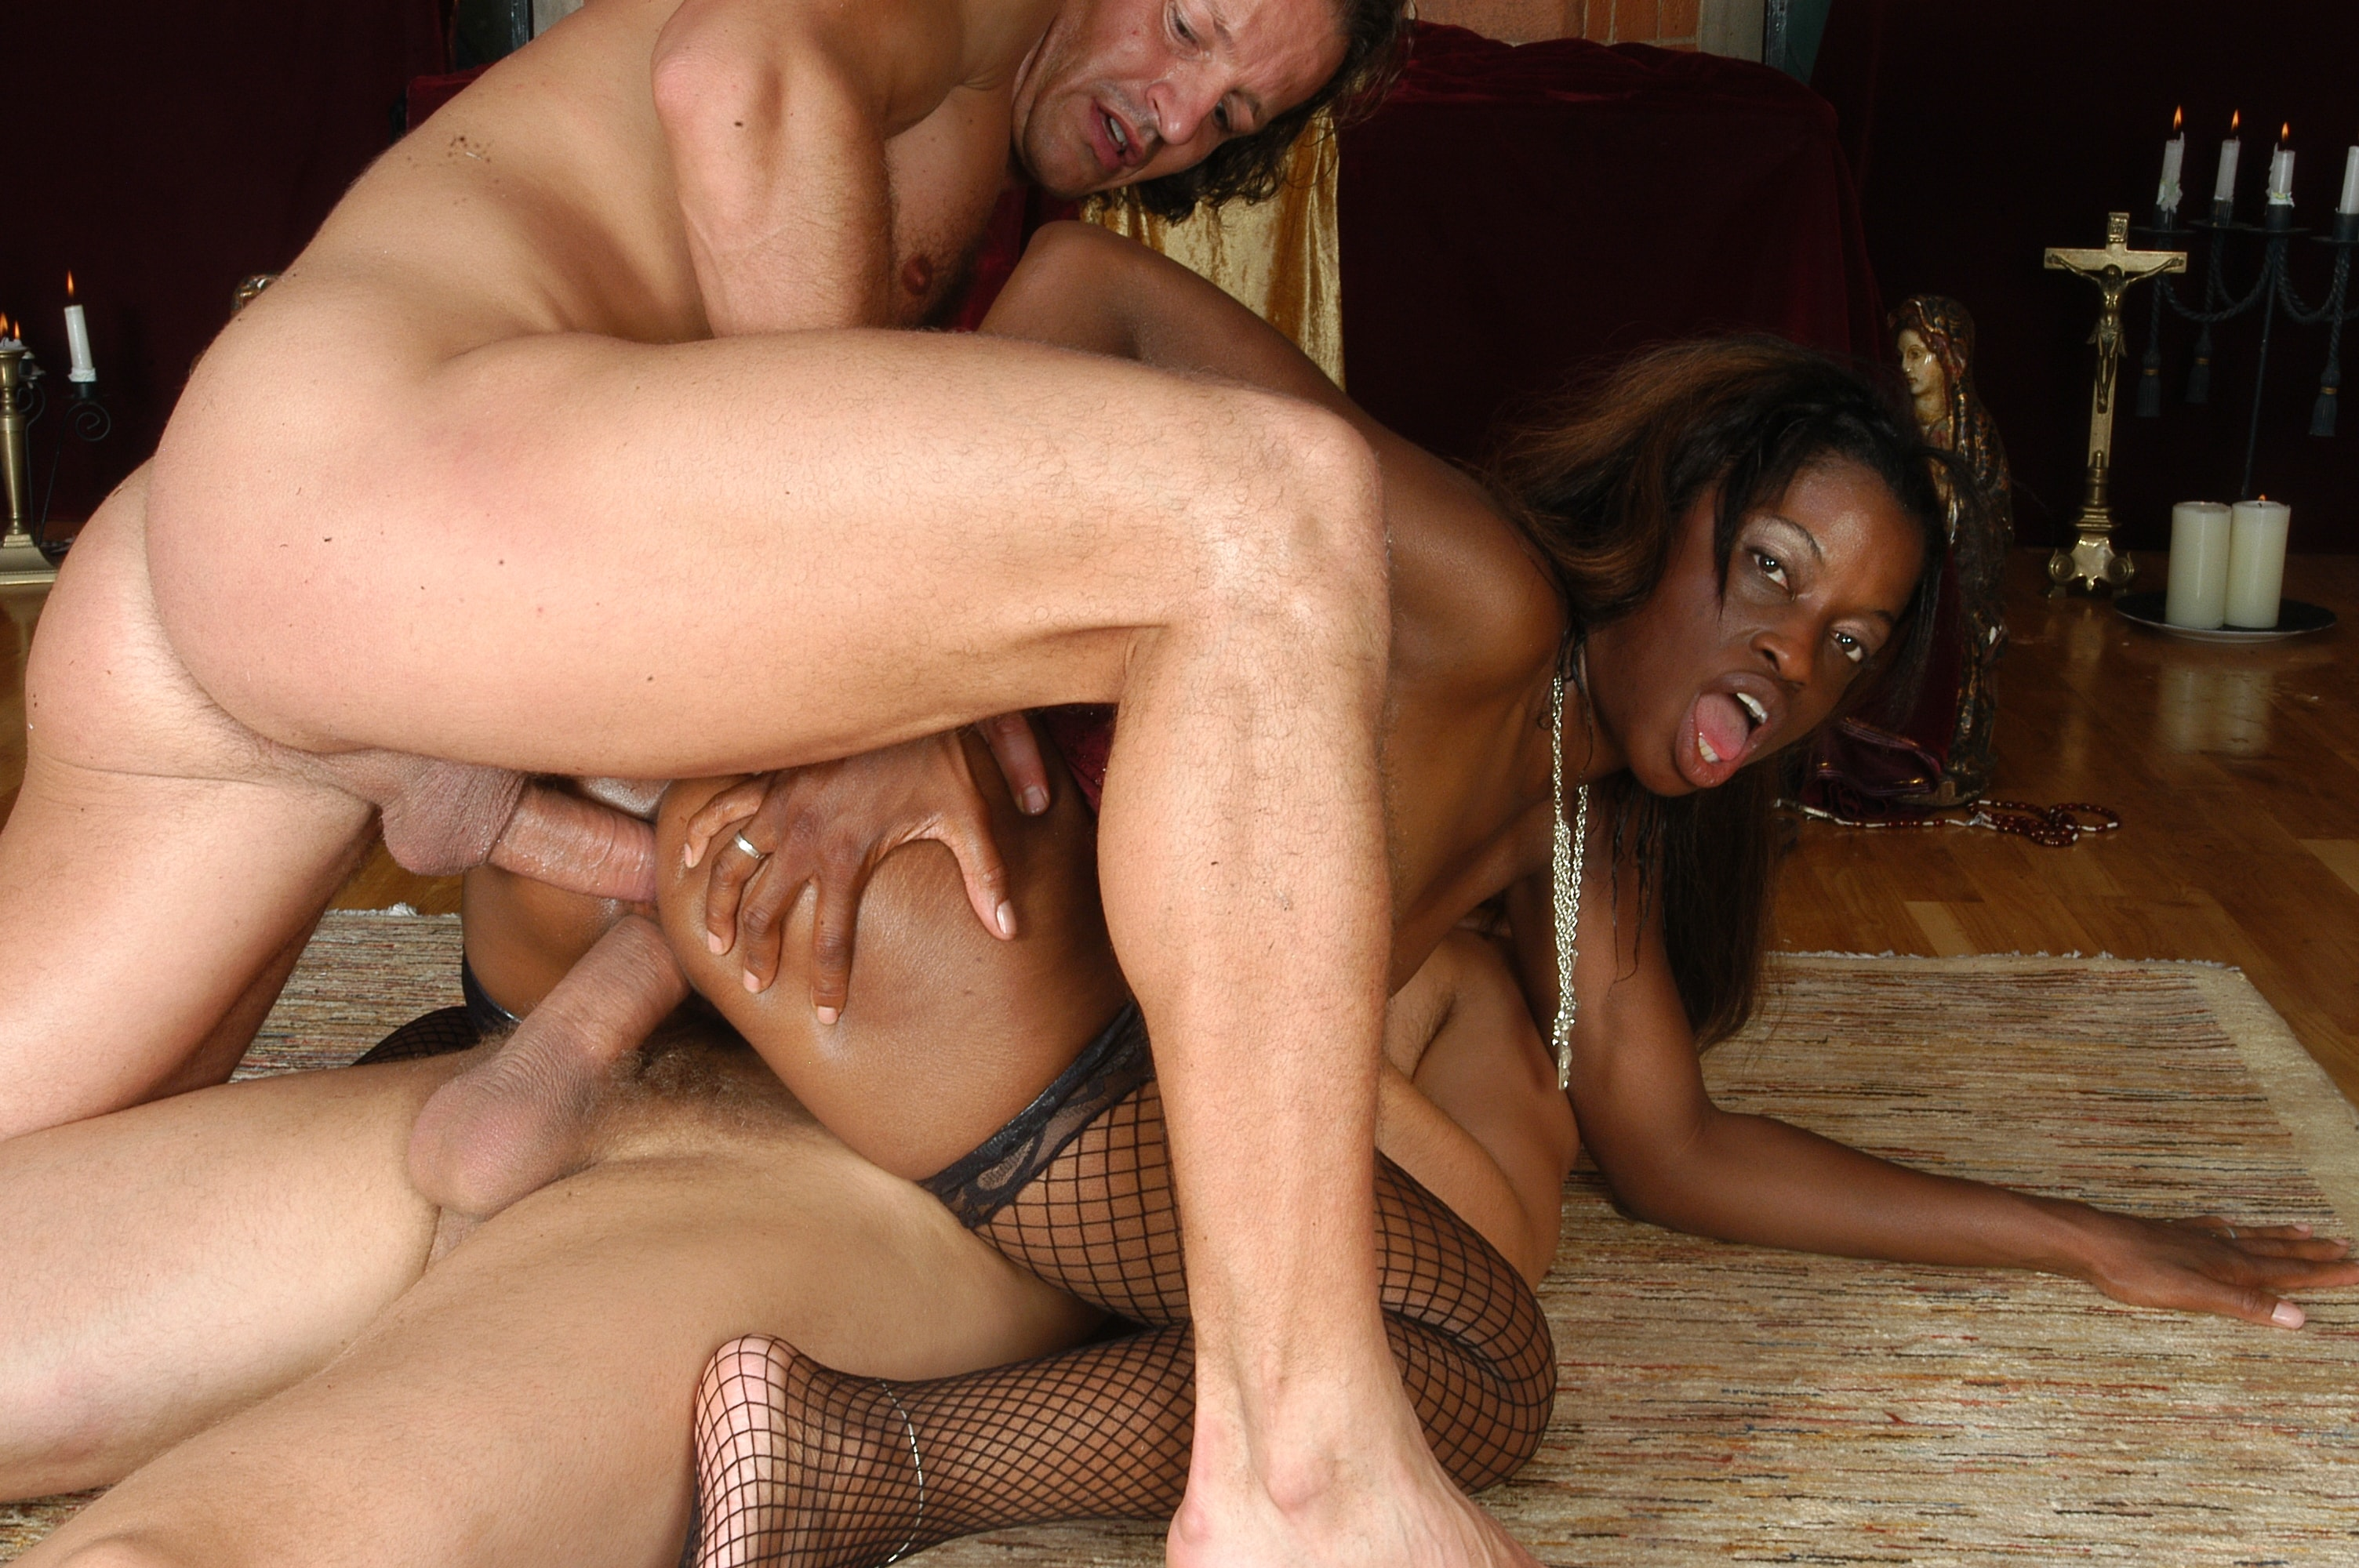 Double penetration pictures and black pussy porn